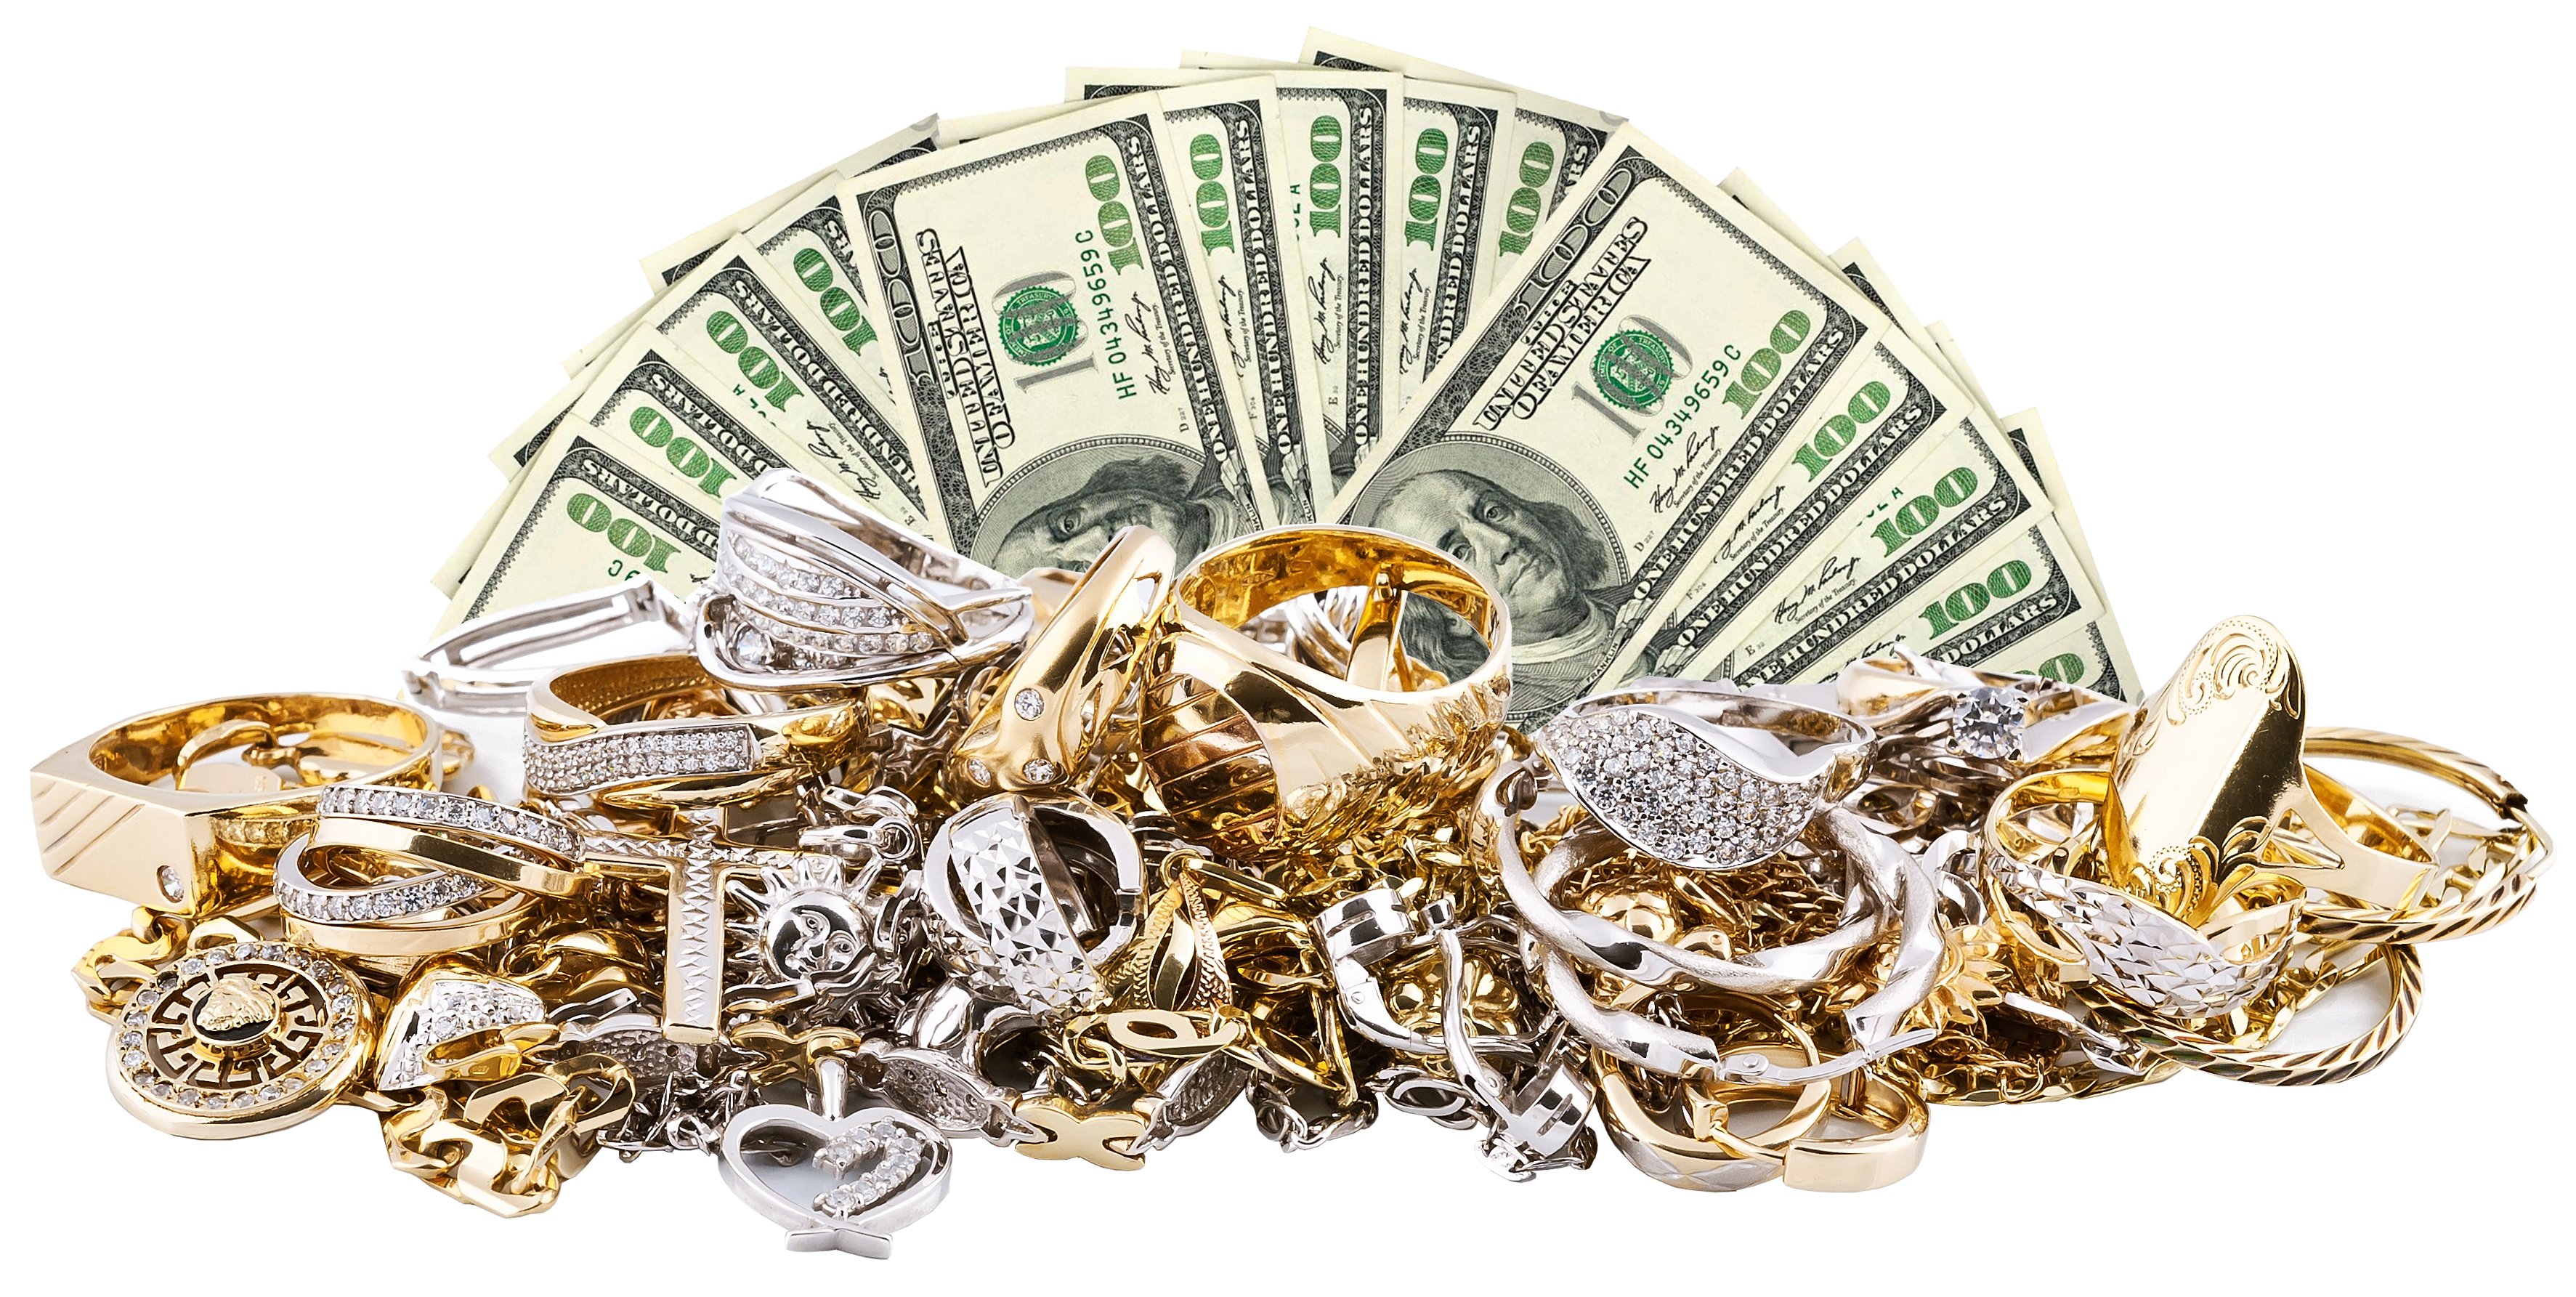 gold jewelry, silver jewelry, cash for gold